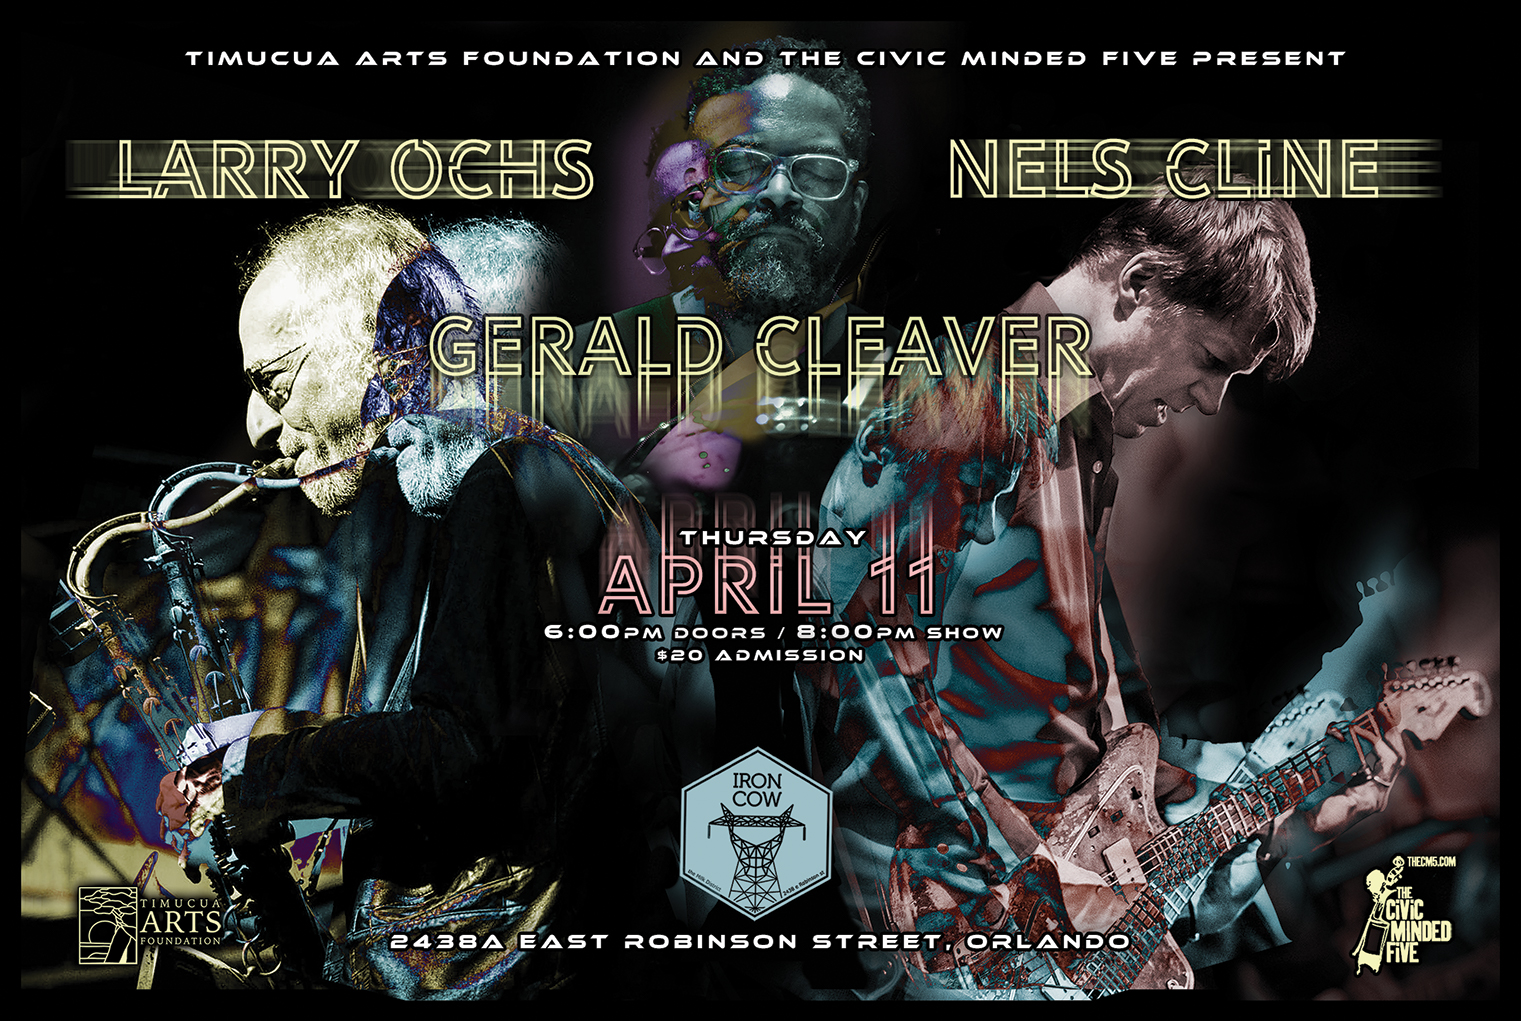 Larry Ochs, Nels Cline, Gerald Cleaver concert poster. Iron Cow Cafe, Orlando. April 11th, 2019